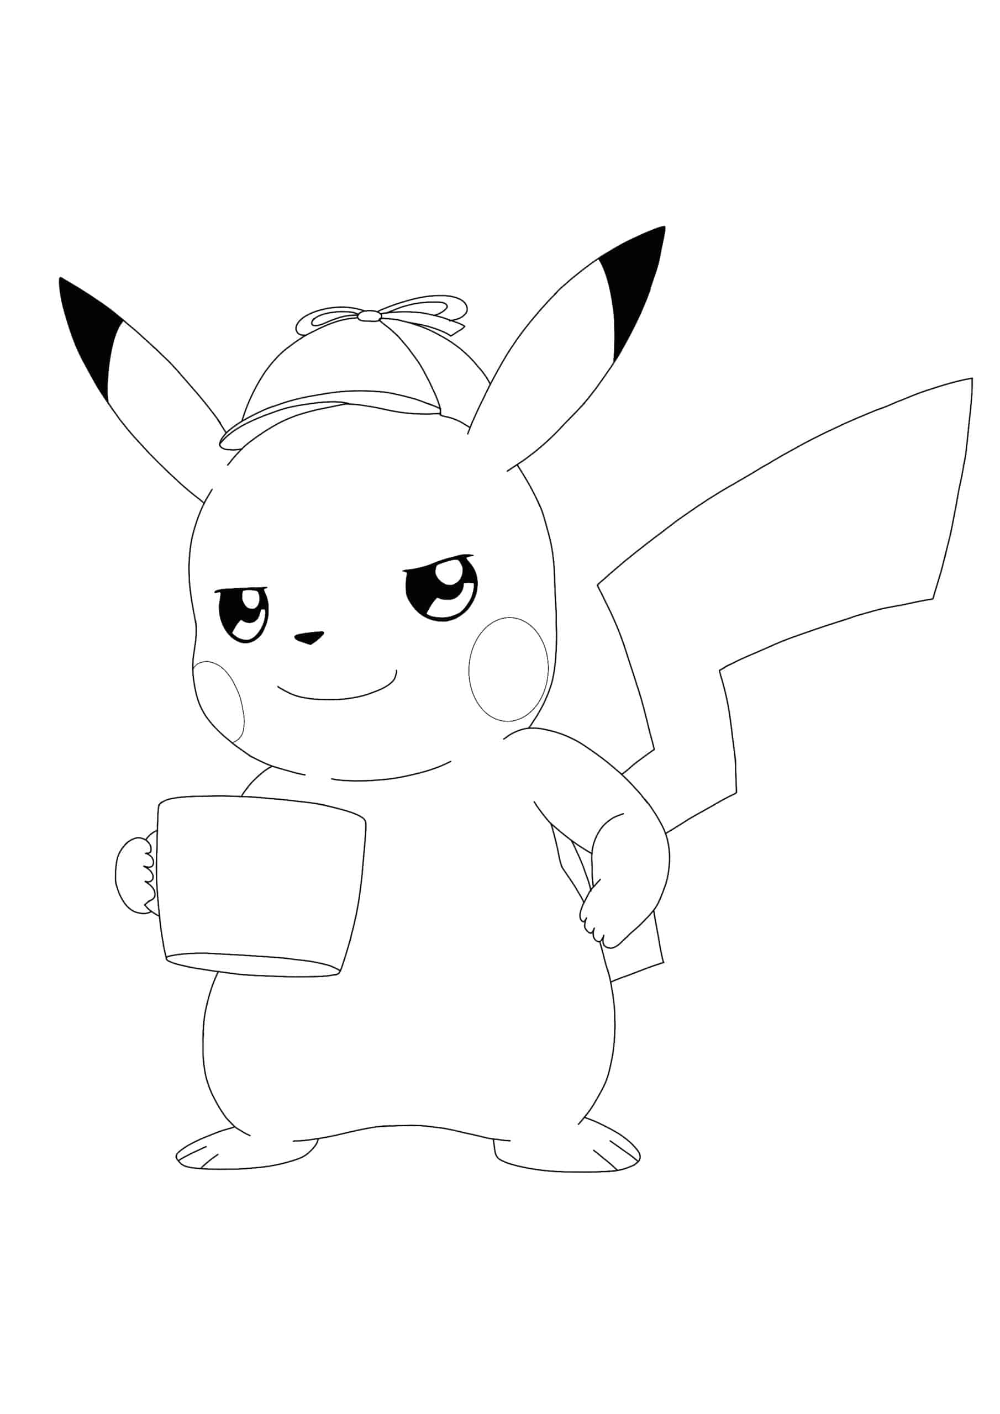 Detective Pikachu Drinks Coffee Coloring Pages 2 Free Coloring Sheets 2020 Pikachu Coloring Page Coloring Pages Pikachu